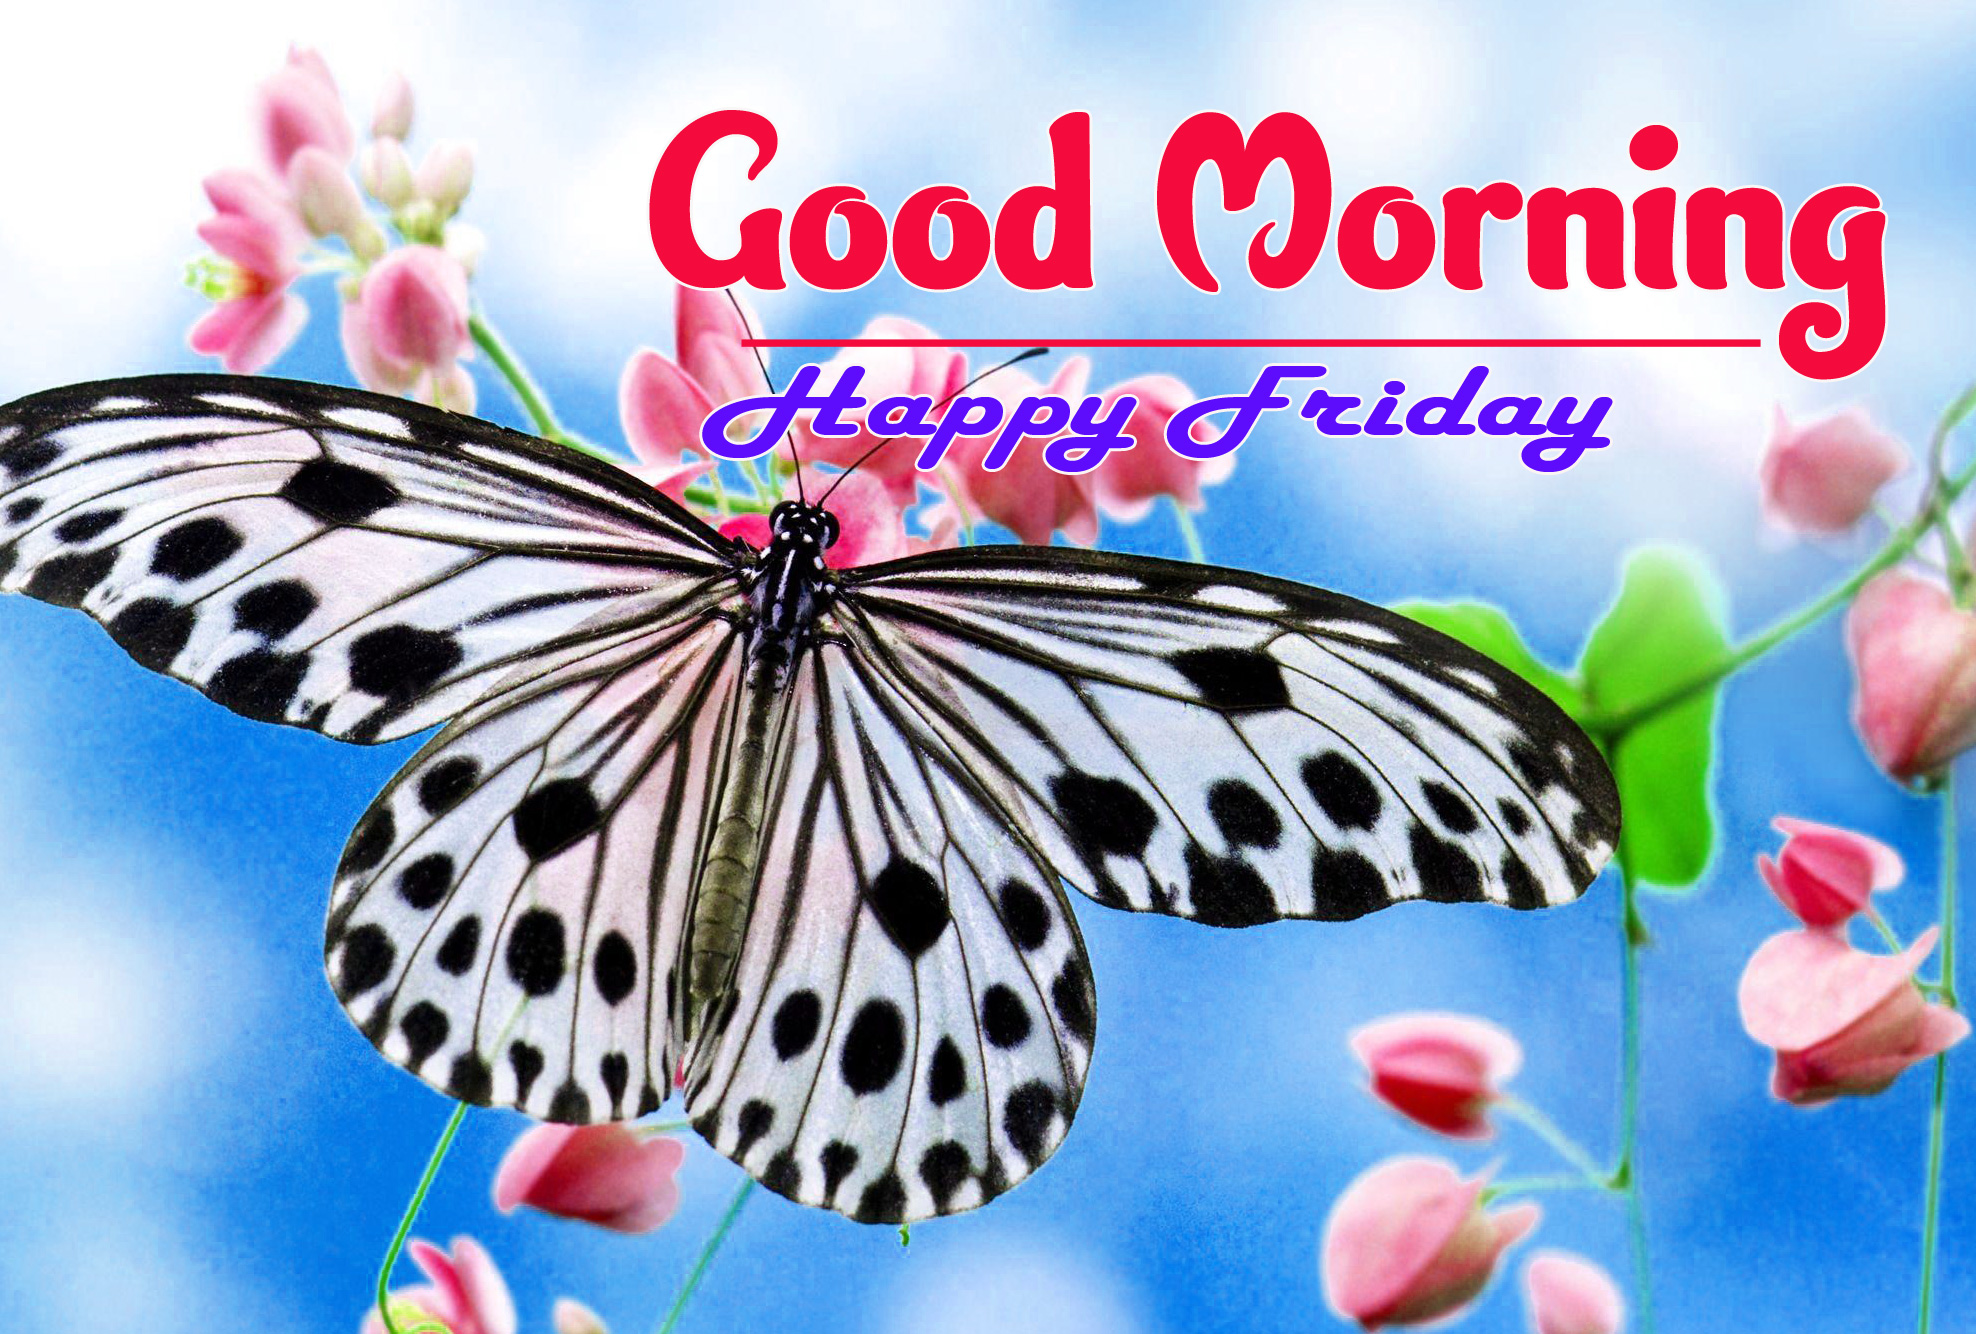 Friday Good Morning Images 5